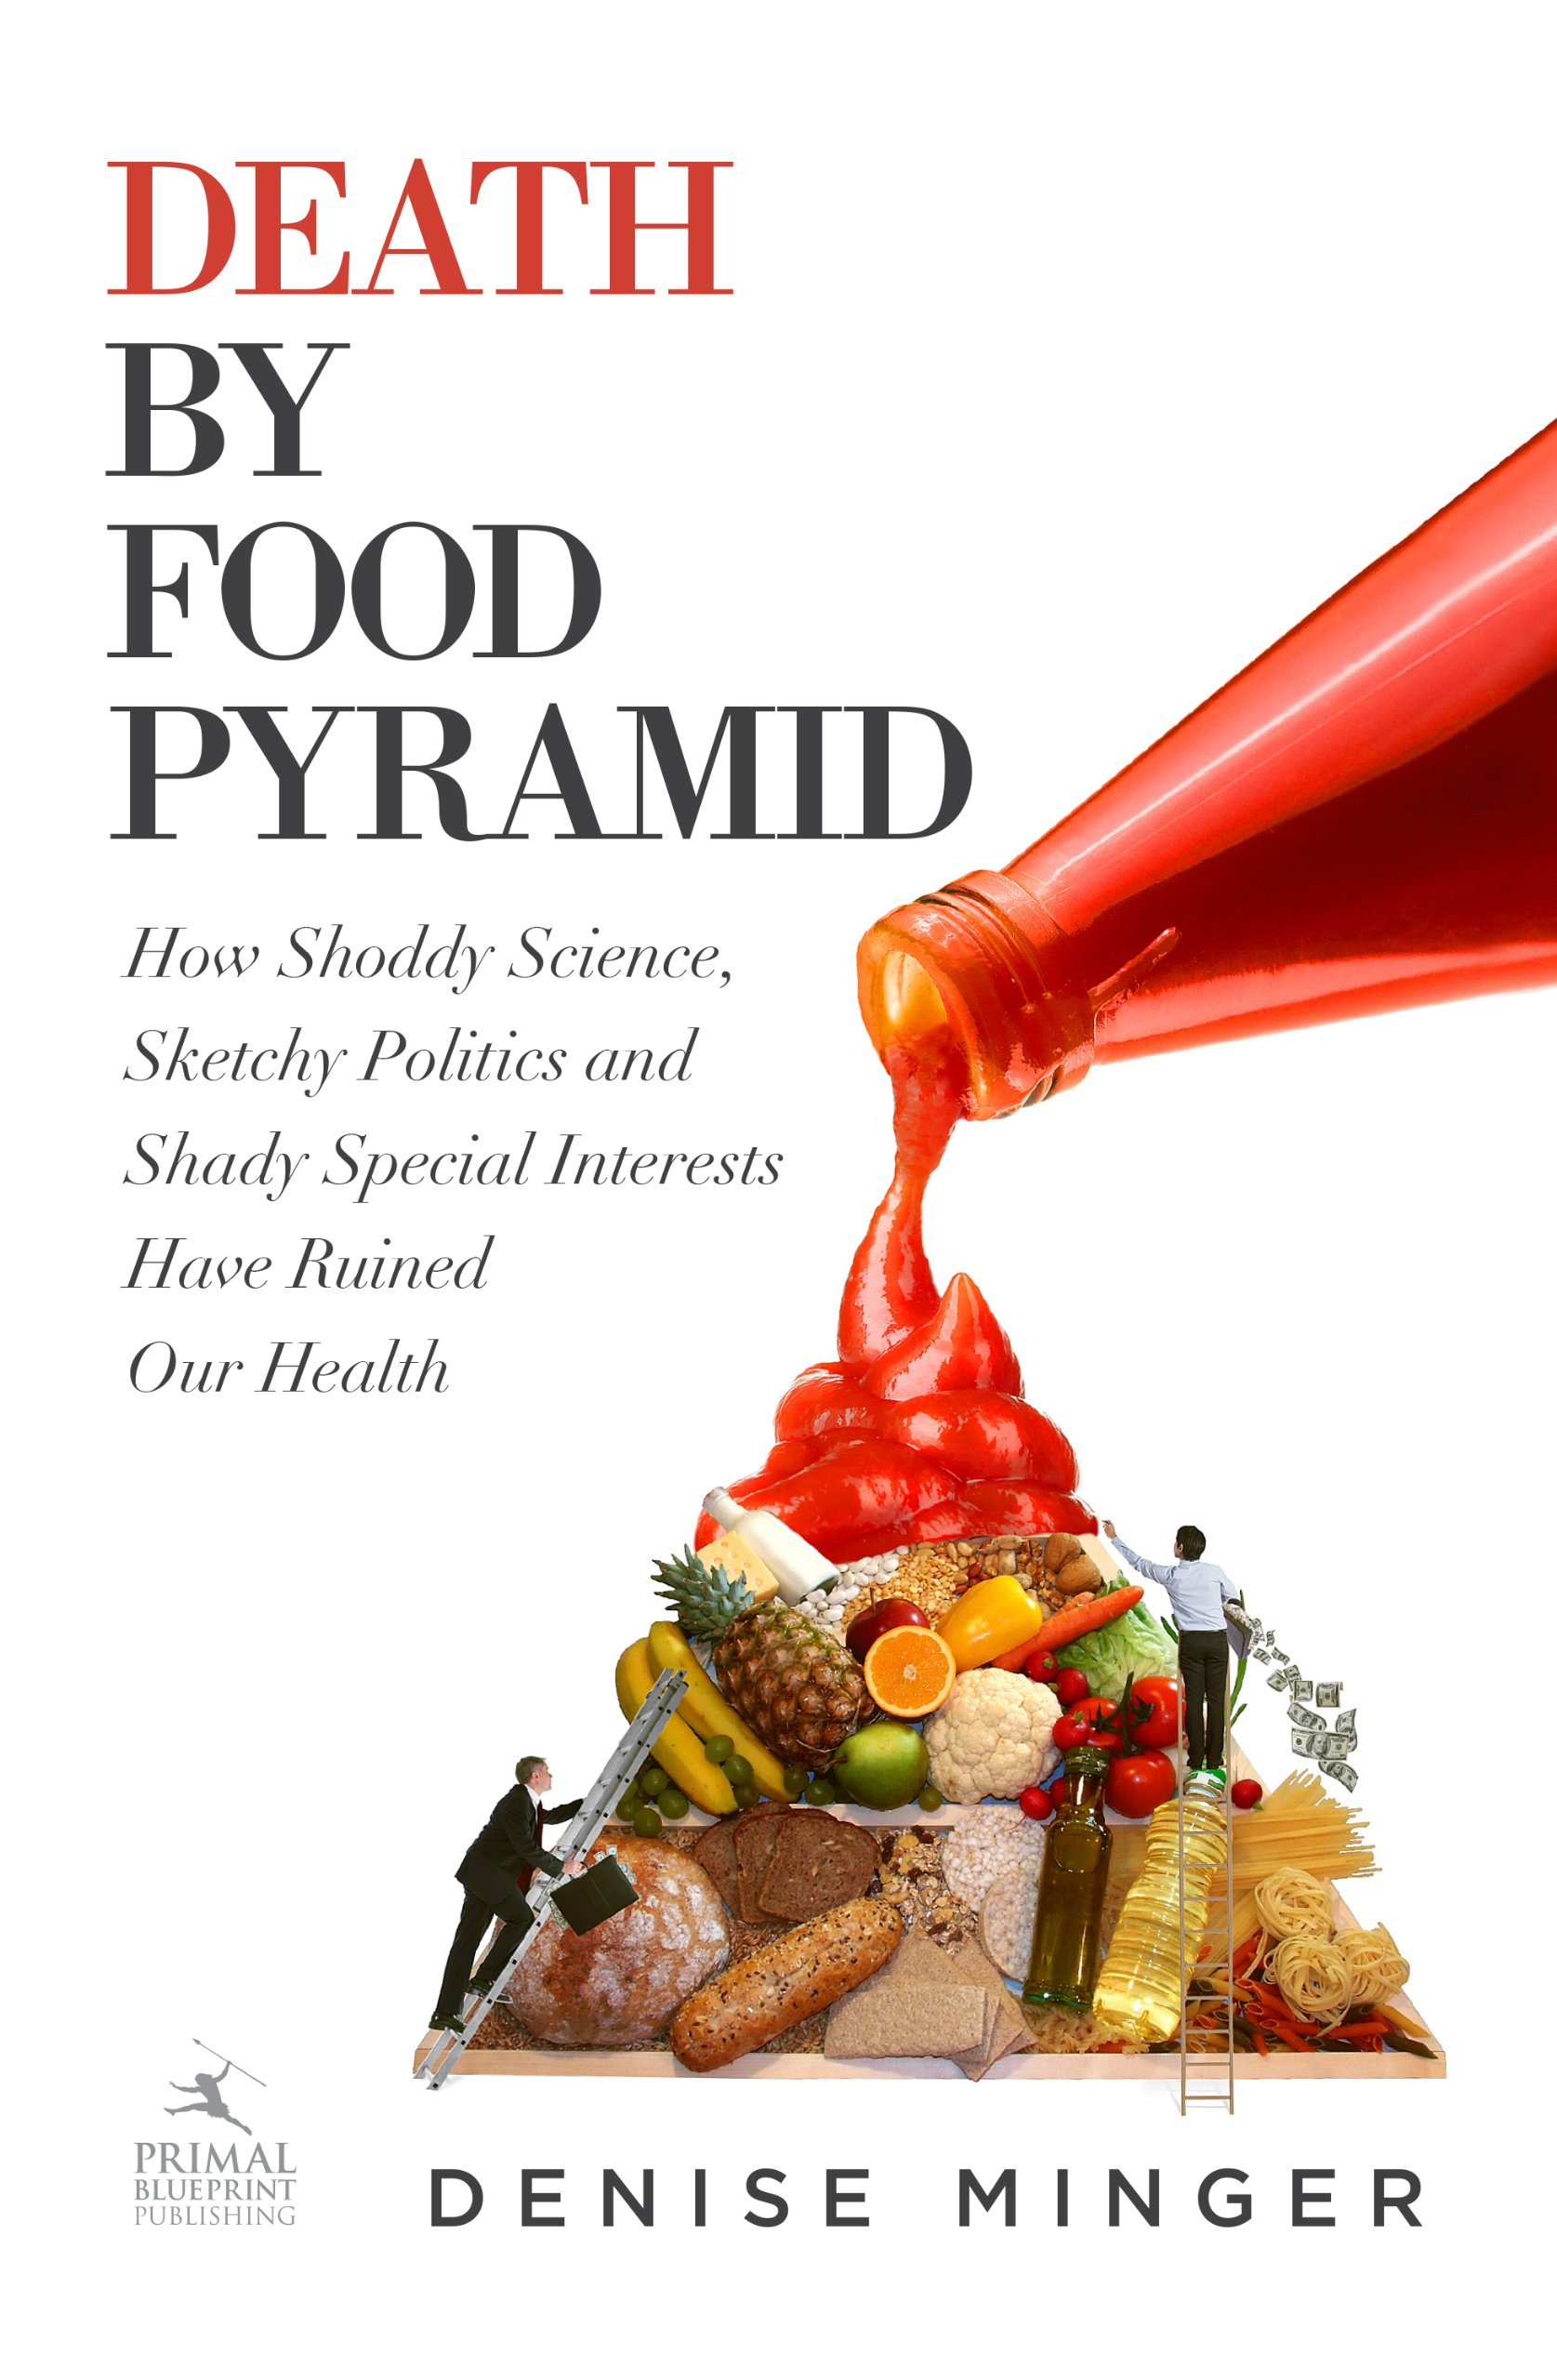 http://www.primalblueprintpublishing.com/books/death-by-food-pyramid/